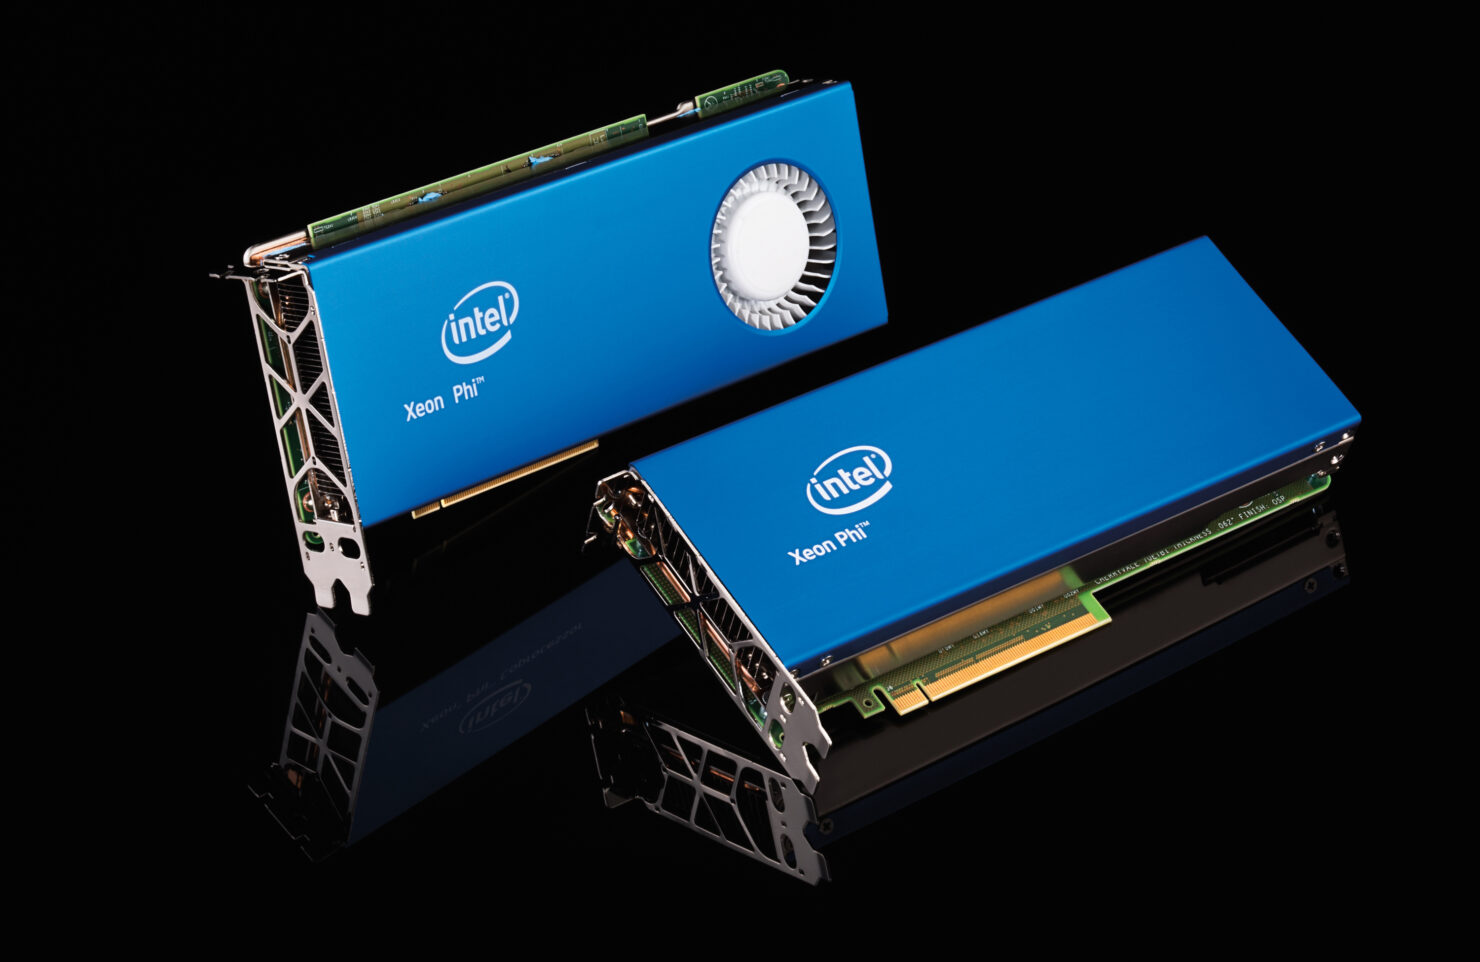 Intel Xeon Phi 7290 Boasts 72 Processing Cores – Fastest Chip Introduced By The Company With Other Model Details Included